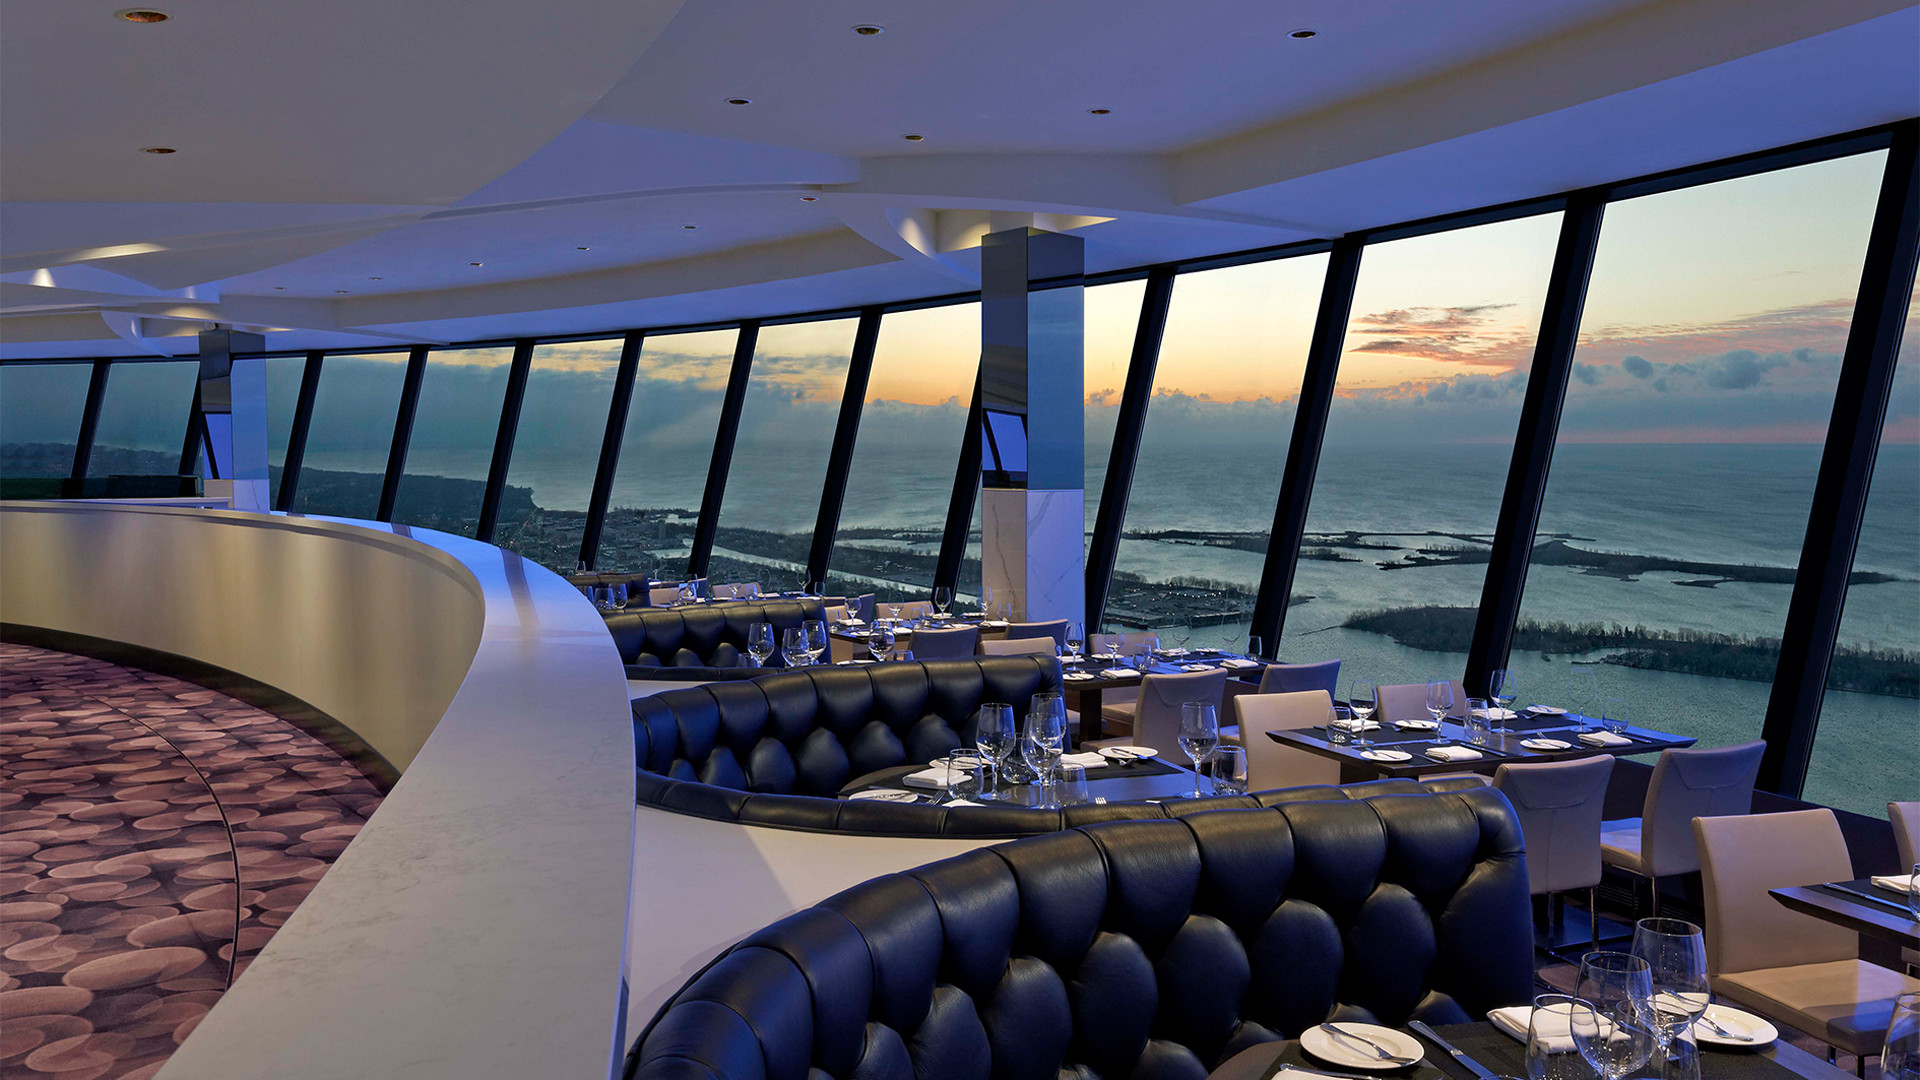 Win dinner for two at the CN Tower's 360 Restaurant | Main dinning room overlooking the lake